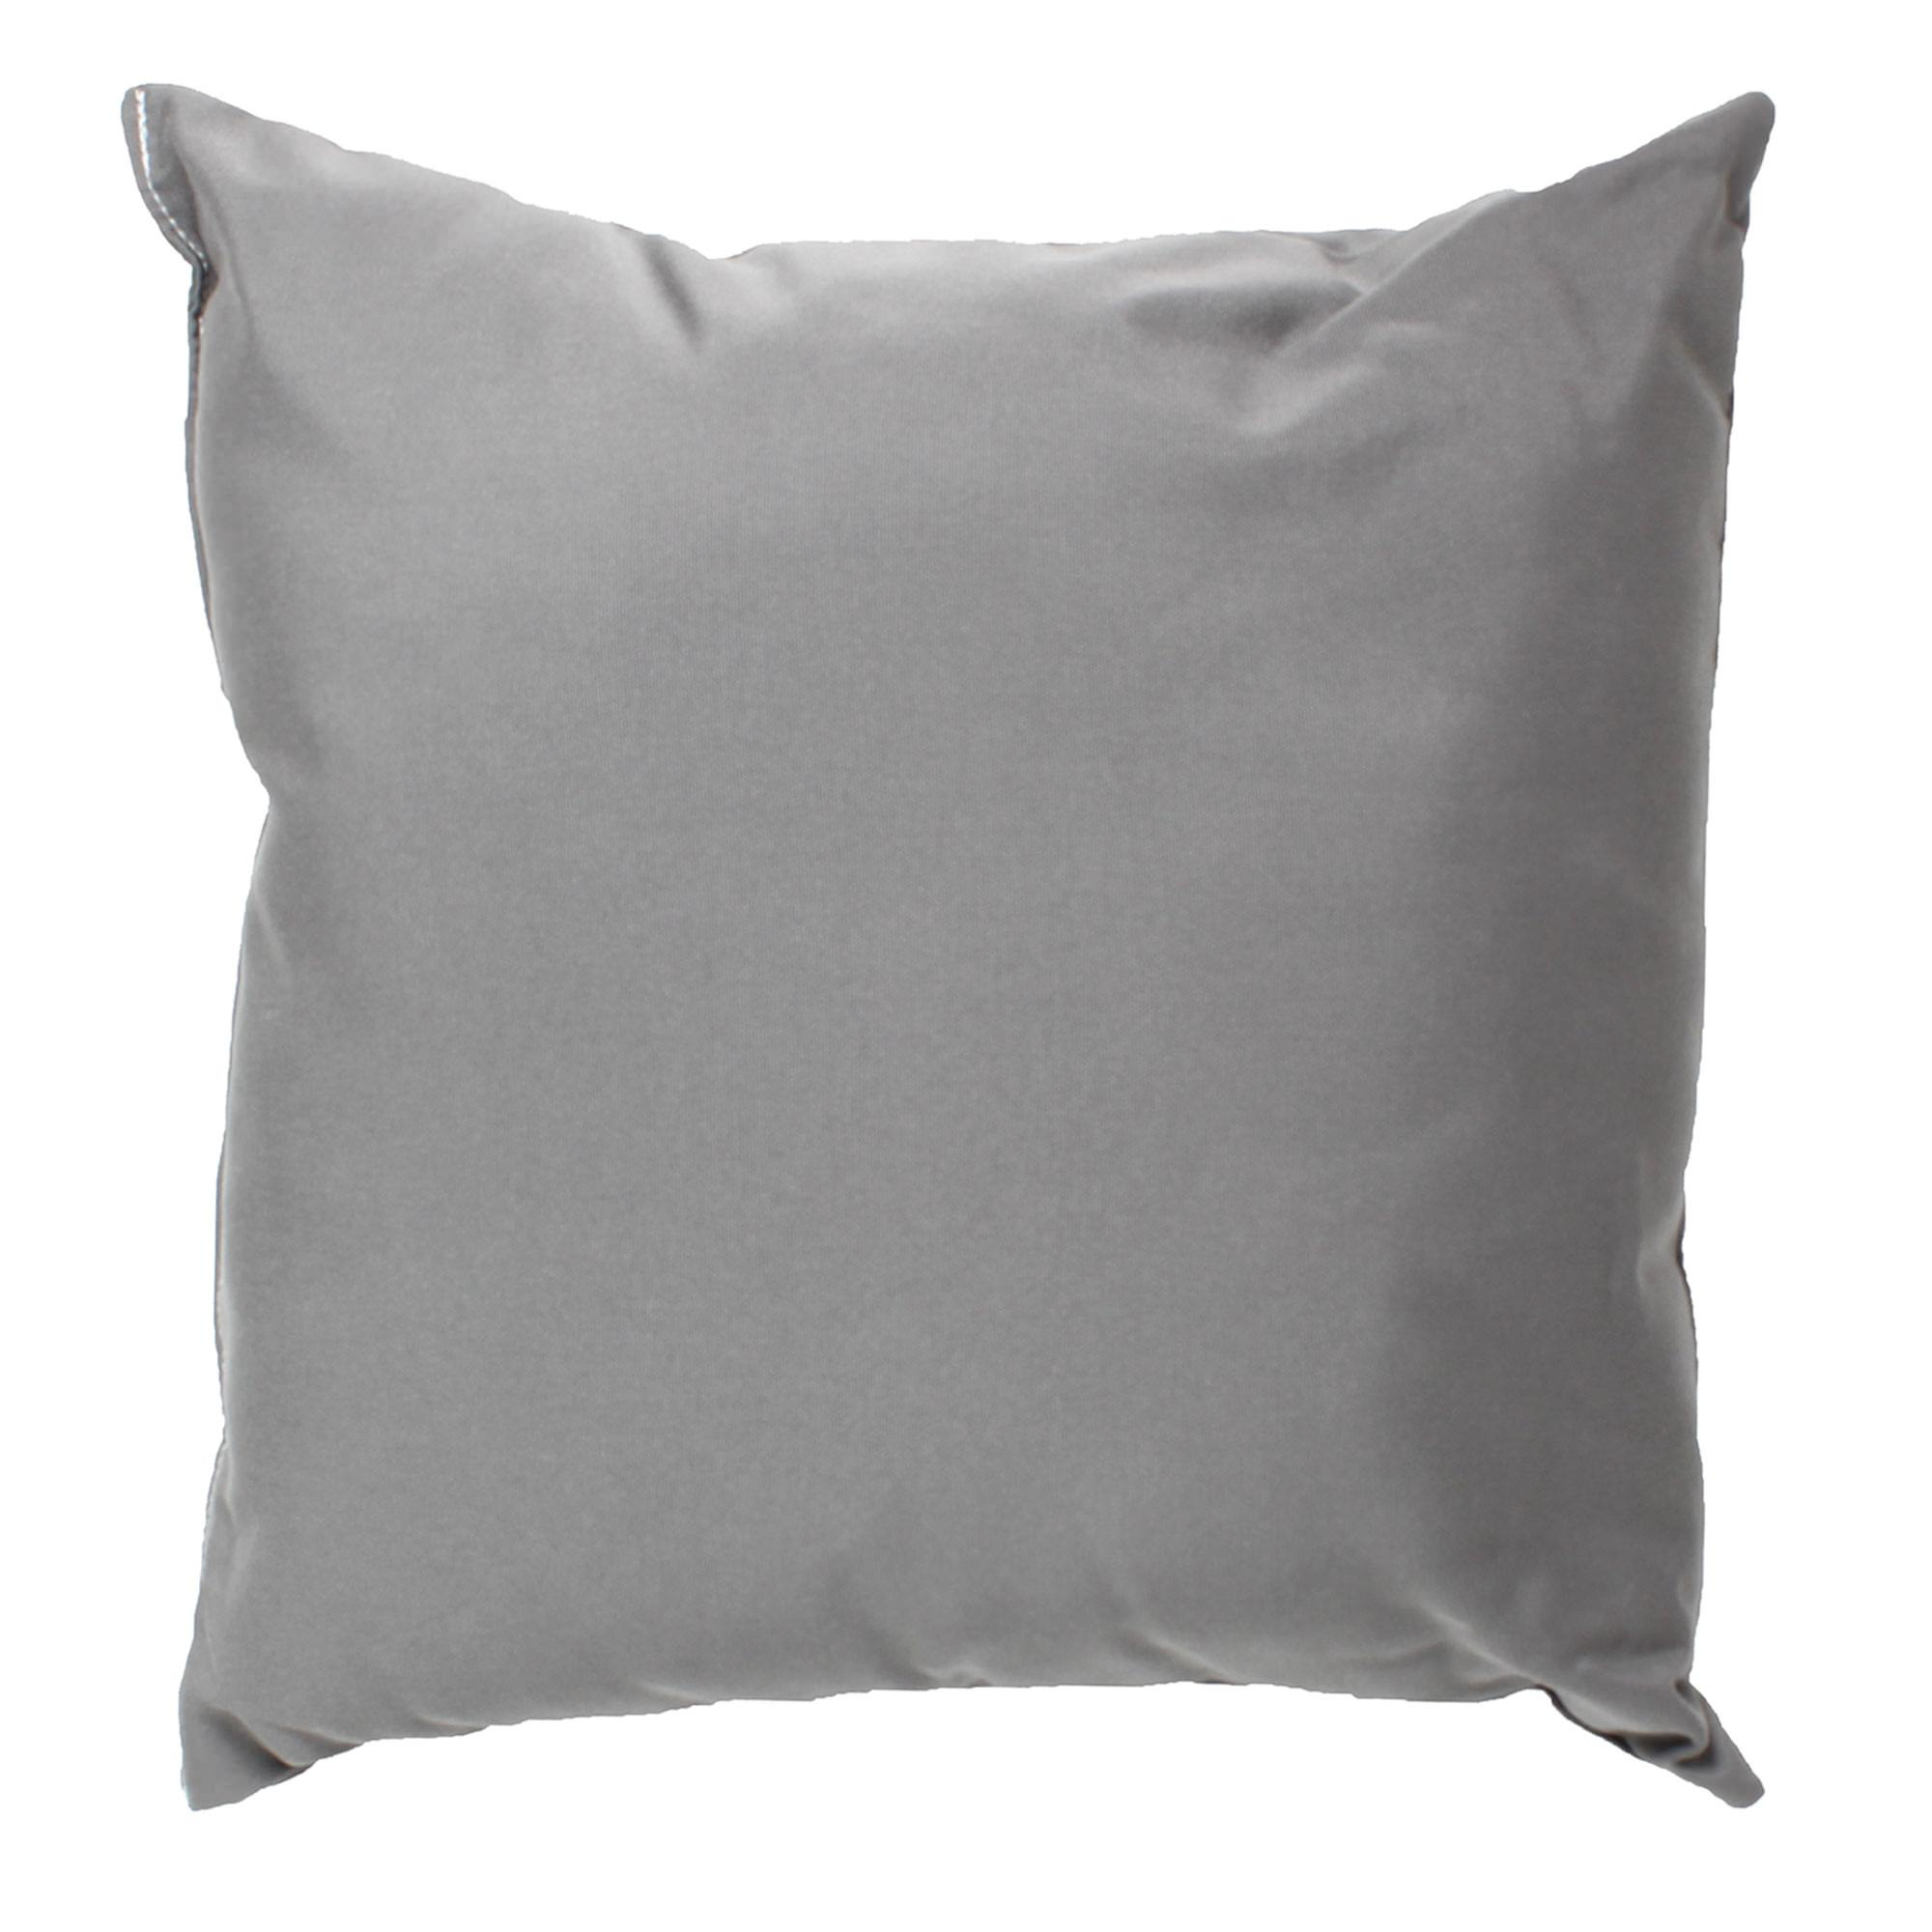 Charcoal Grey Sunbrella Outdoor Throw Pillow